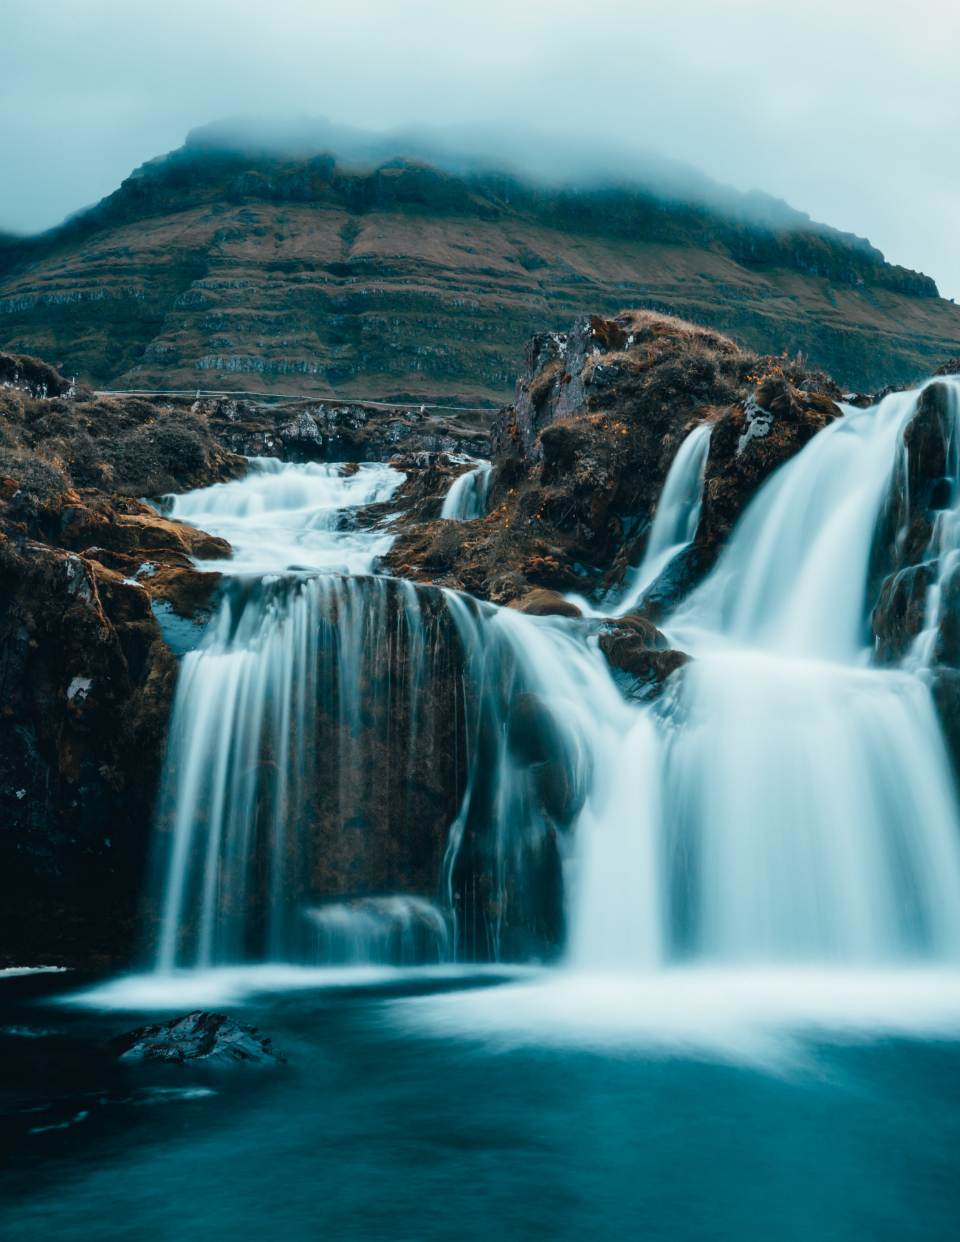 cloudy mountain waterfall rural landscape beautiful nature outdoors moody water long exposure climate weather environment travel explore hiking wanderlust